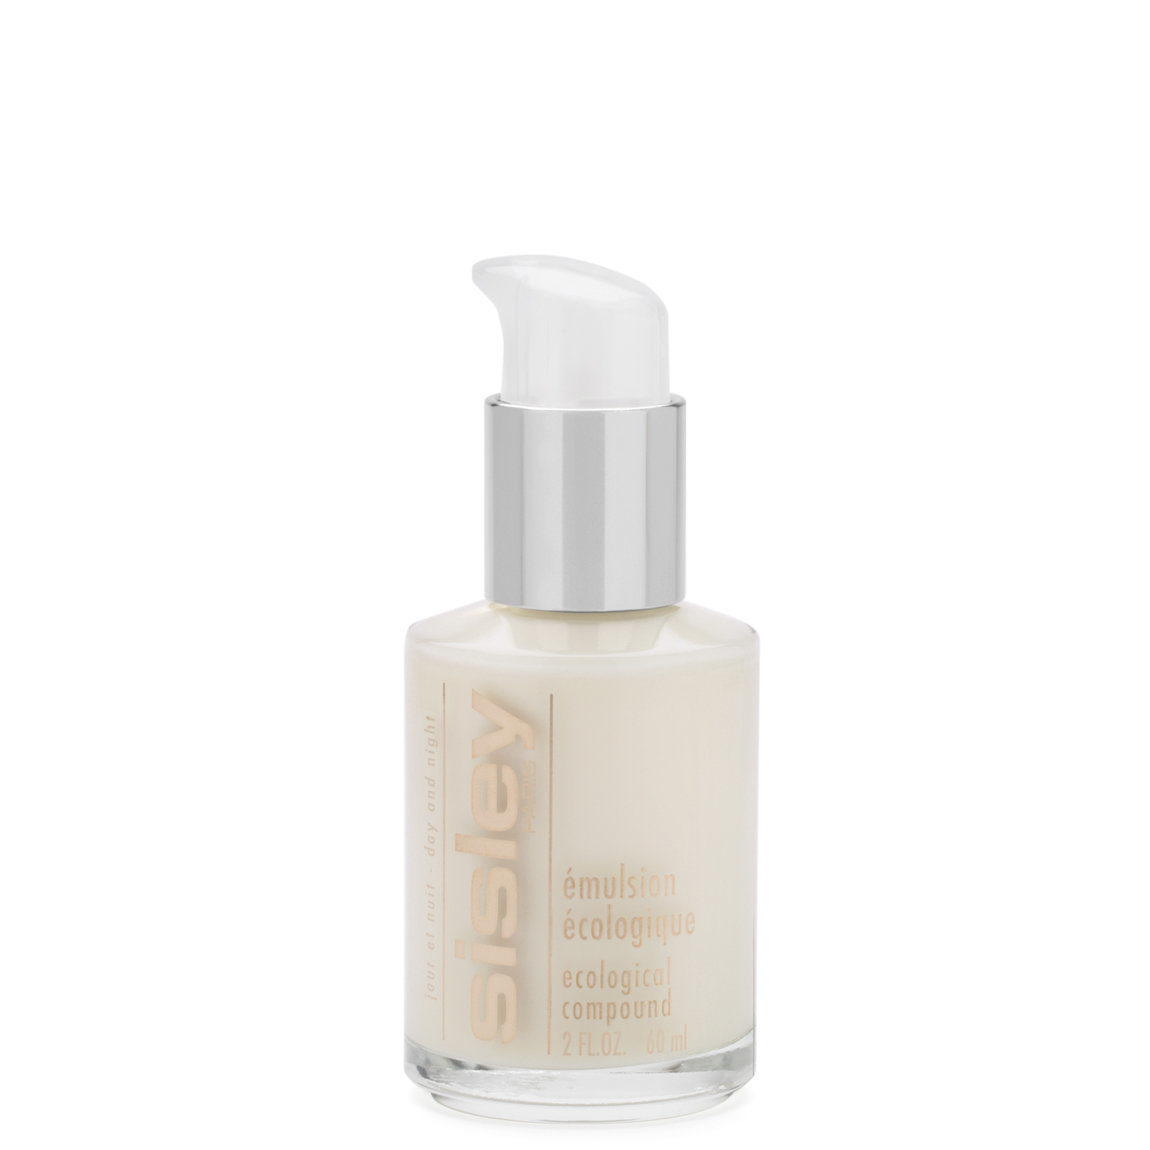 Sisley-Paris Ecological Compound 60 ml alternative view 1 - product swatch.